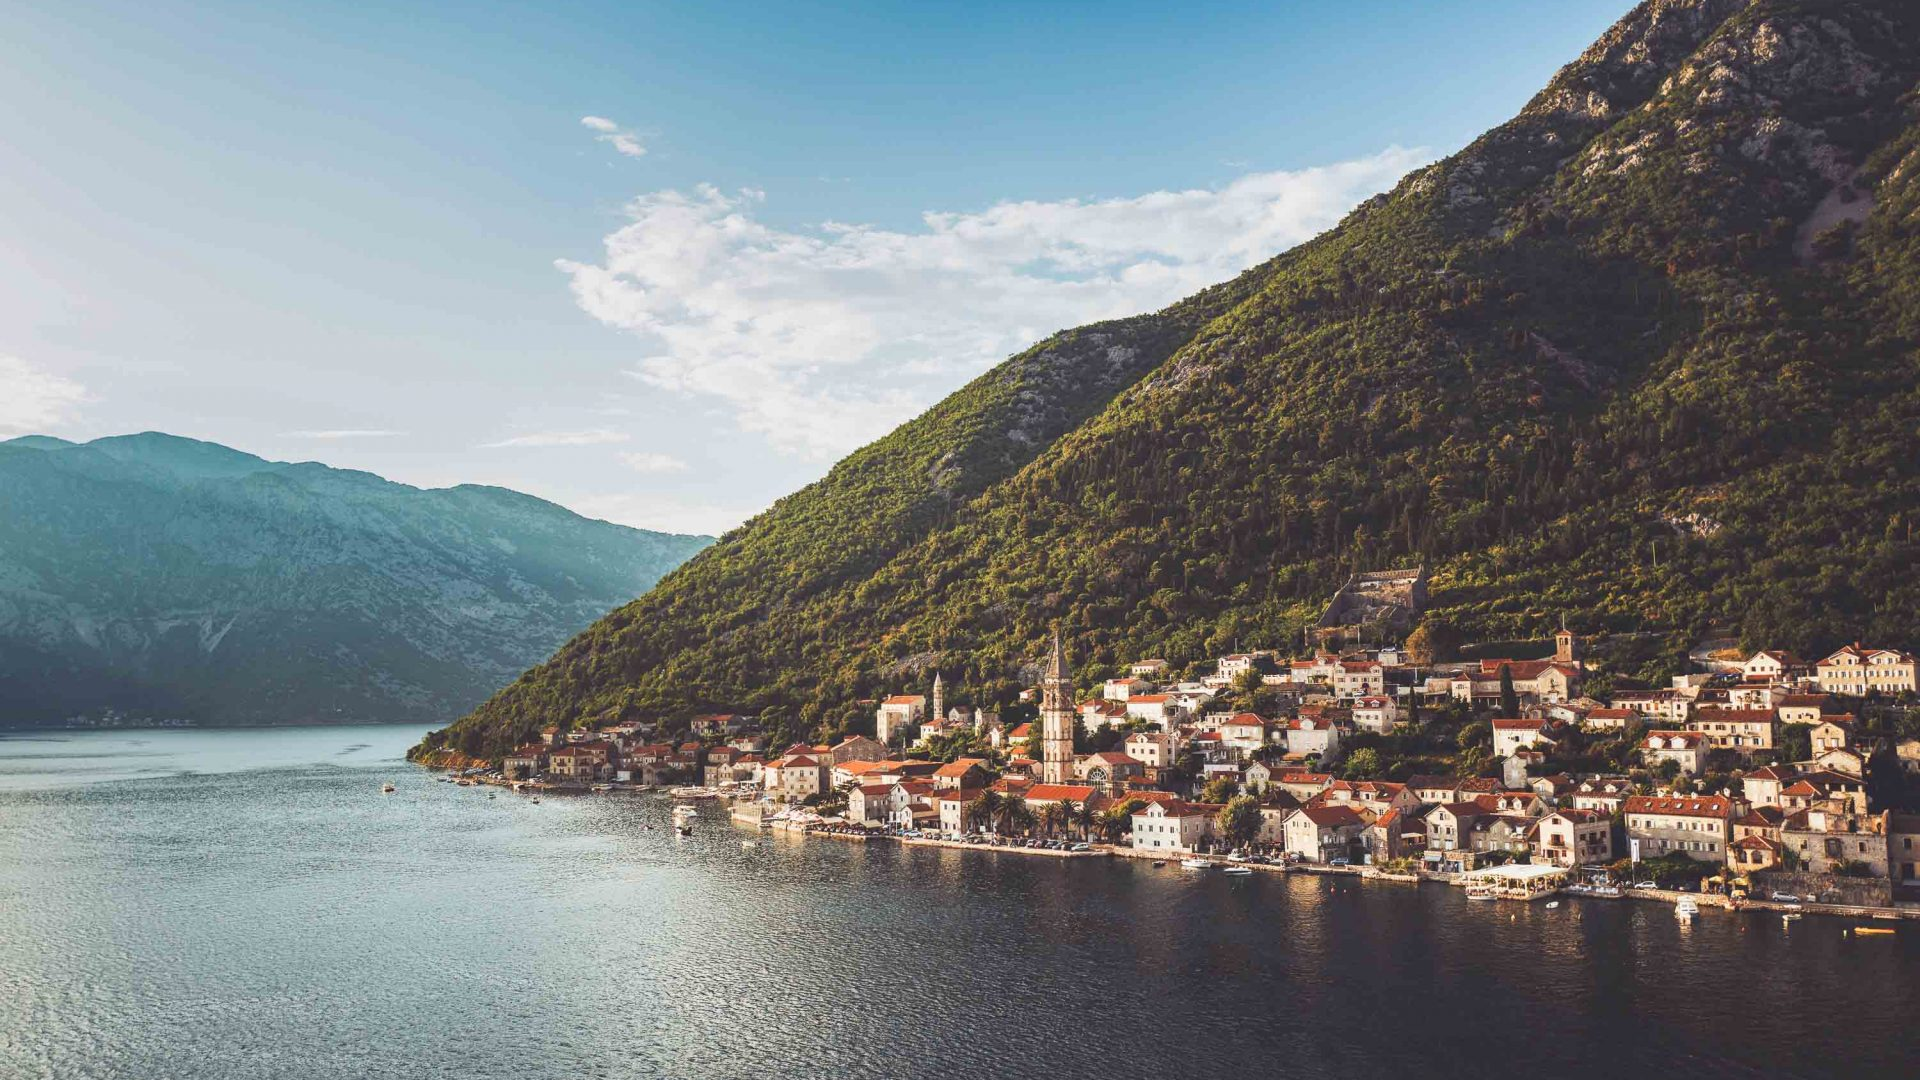 The town of Kotor, Montenegro.